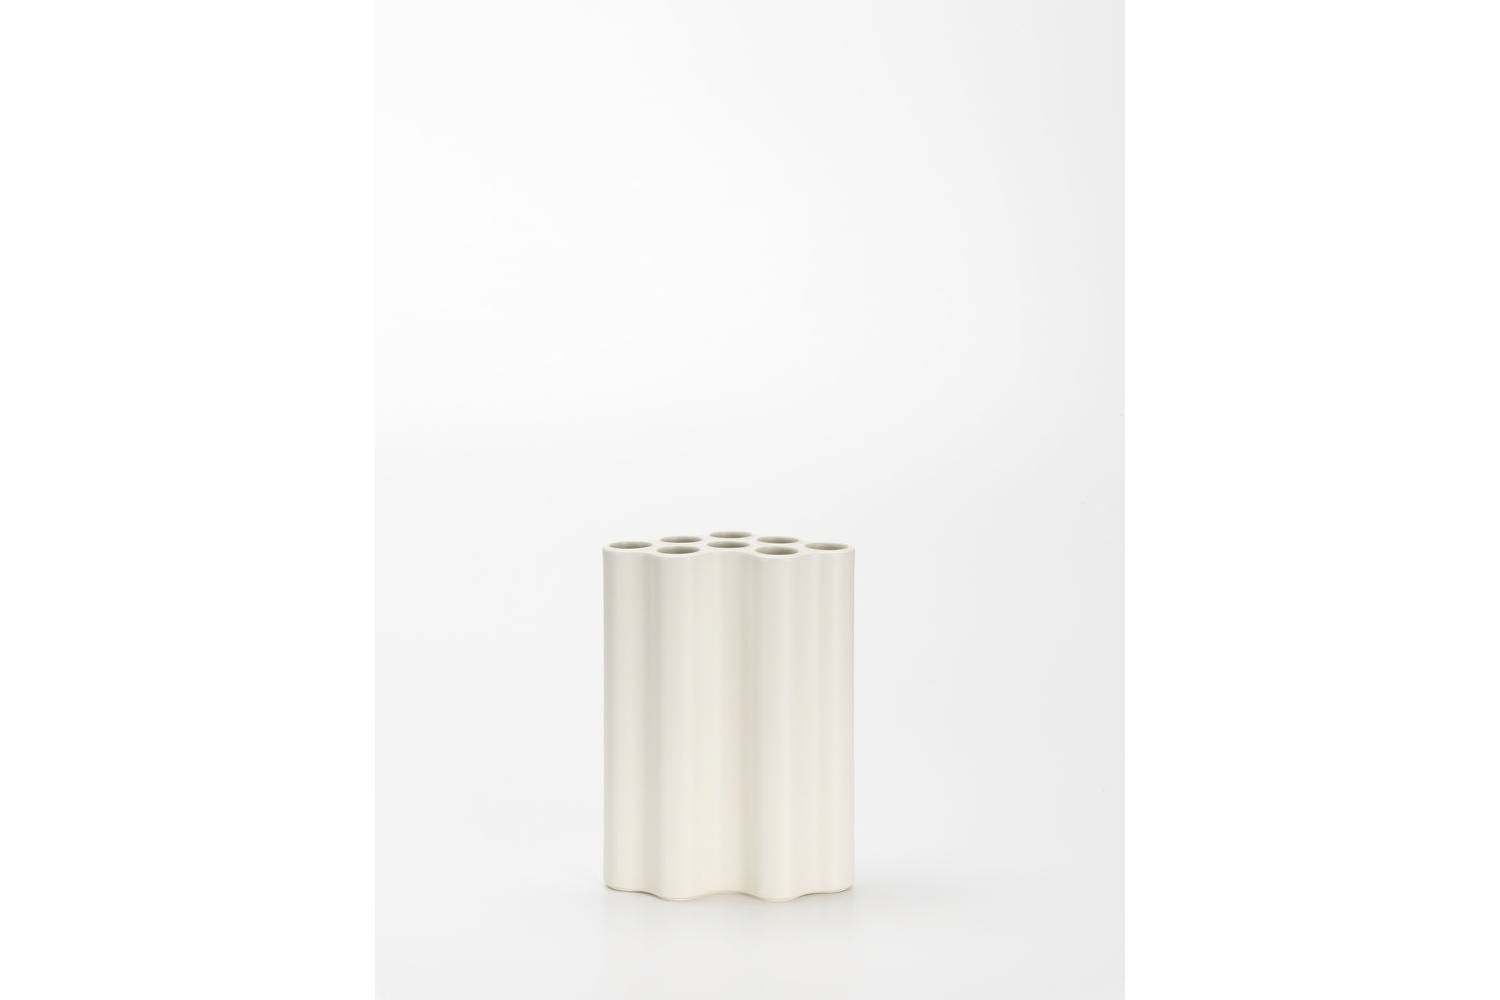 Nuage Ceramic Large Vase by Ronan & Erwan Bouroullec for Vitra